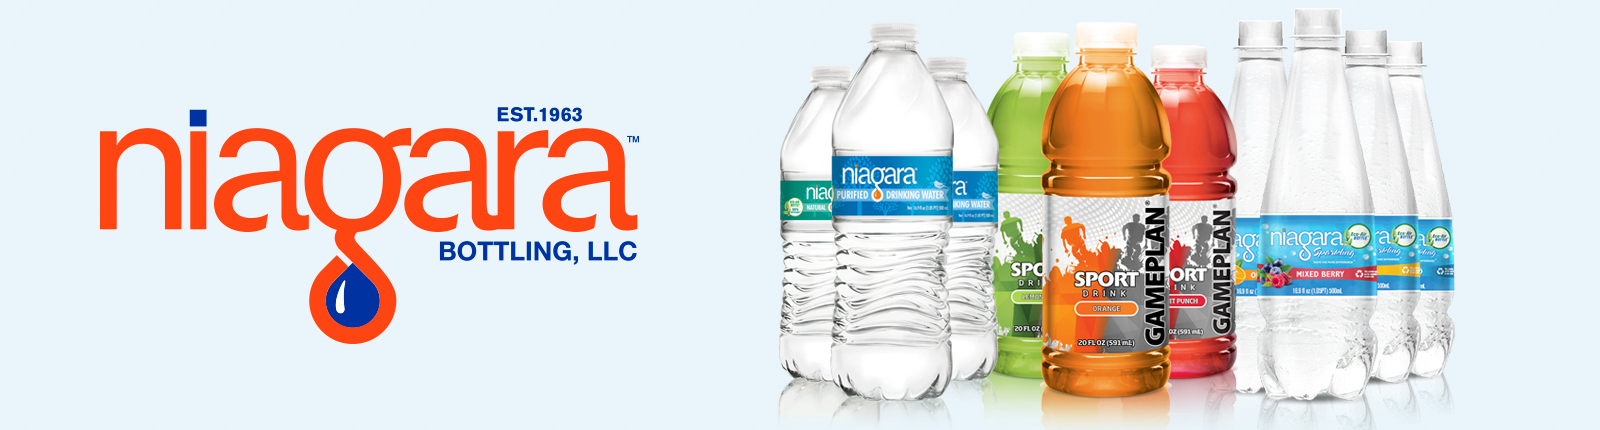 b8294d89ce CHESTERFIELD – Governor Terry McAuliffe announced today that Niagara  Bottling LLC, a family-owned and operated bottled beverage supplier, will  invest $95 ...